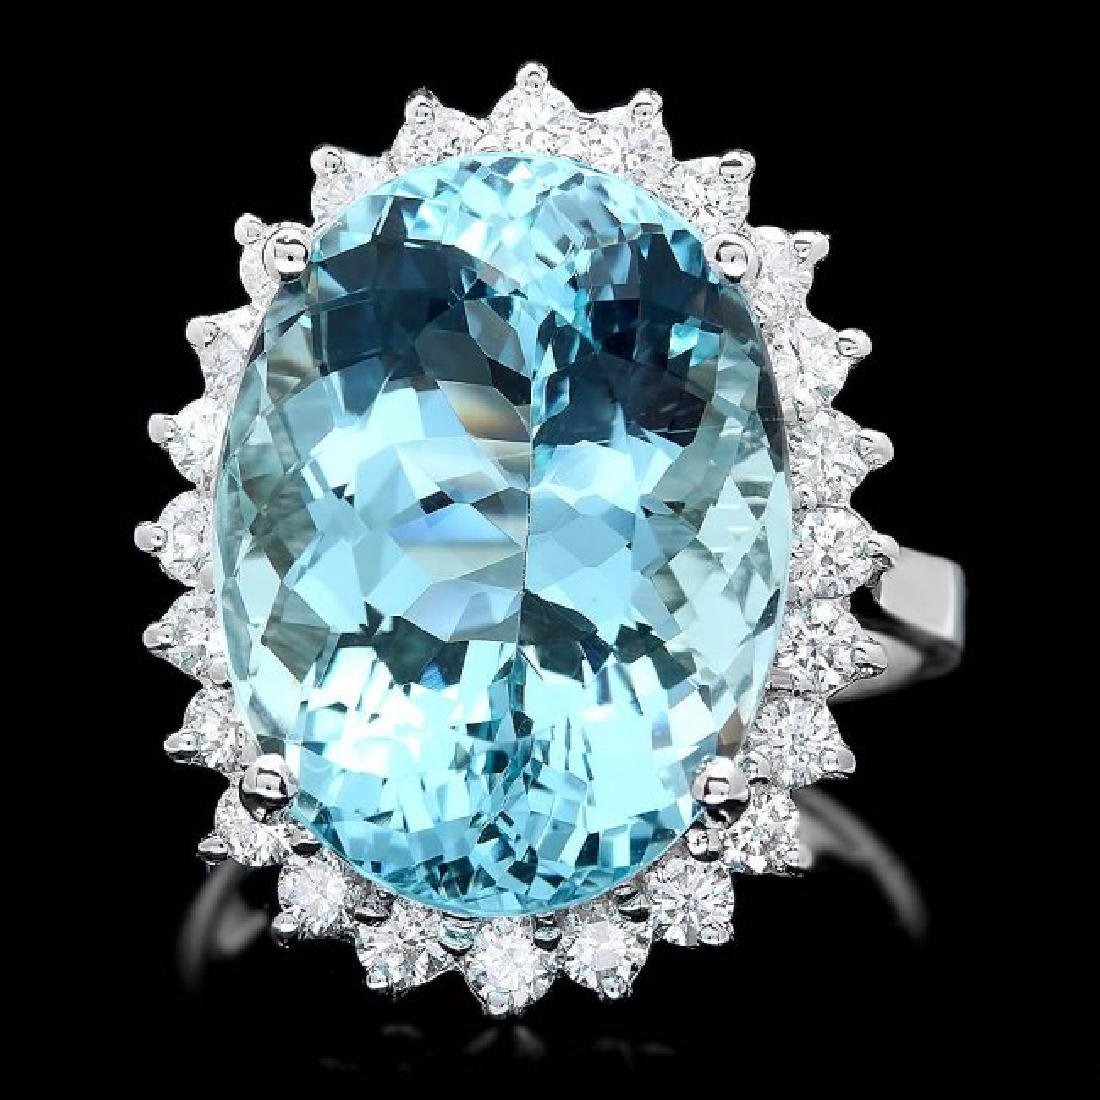 18k Gold 13ct Aquamarine 0.90ct Diamond Ring